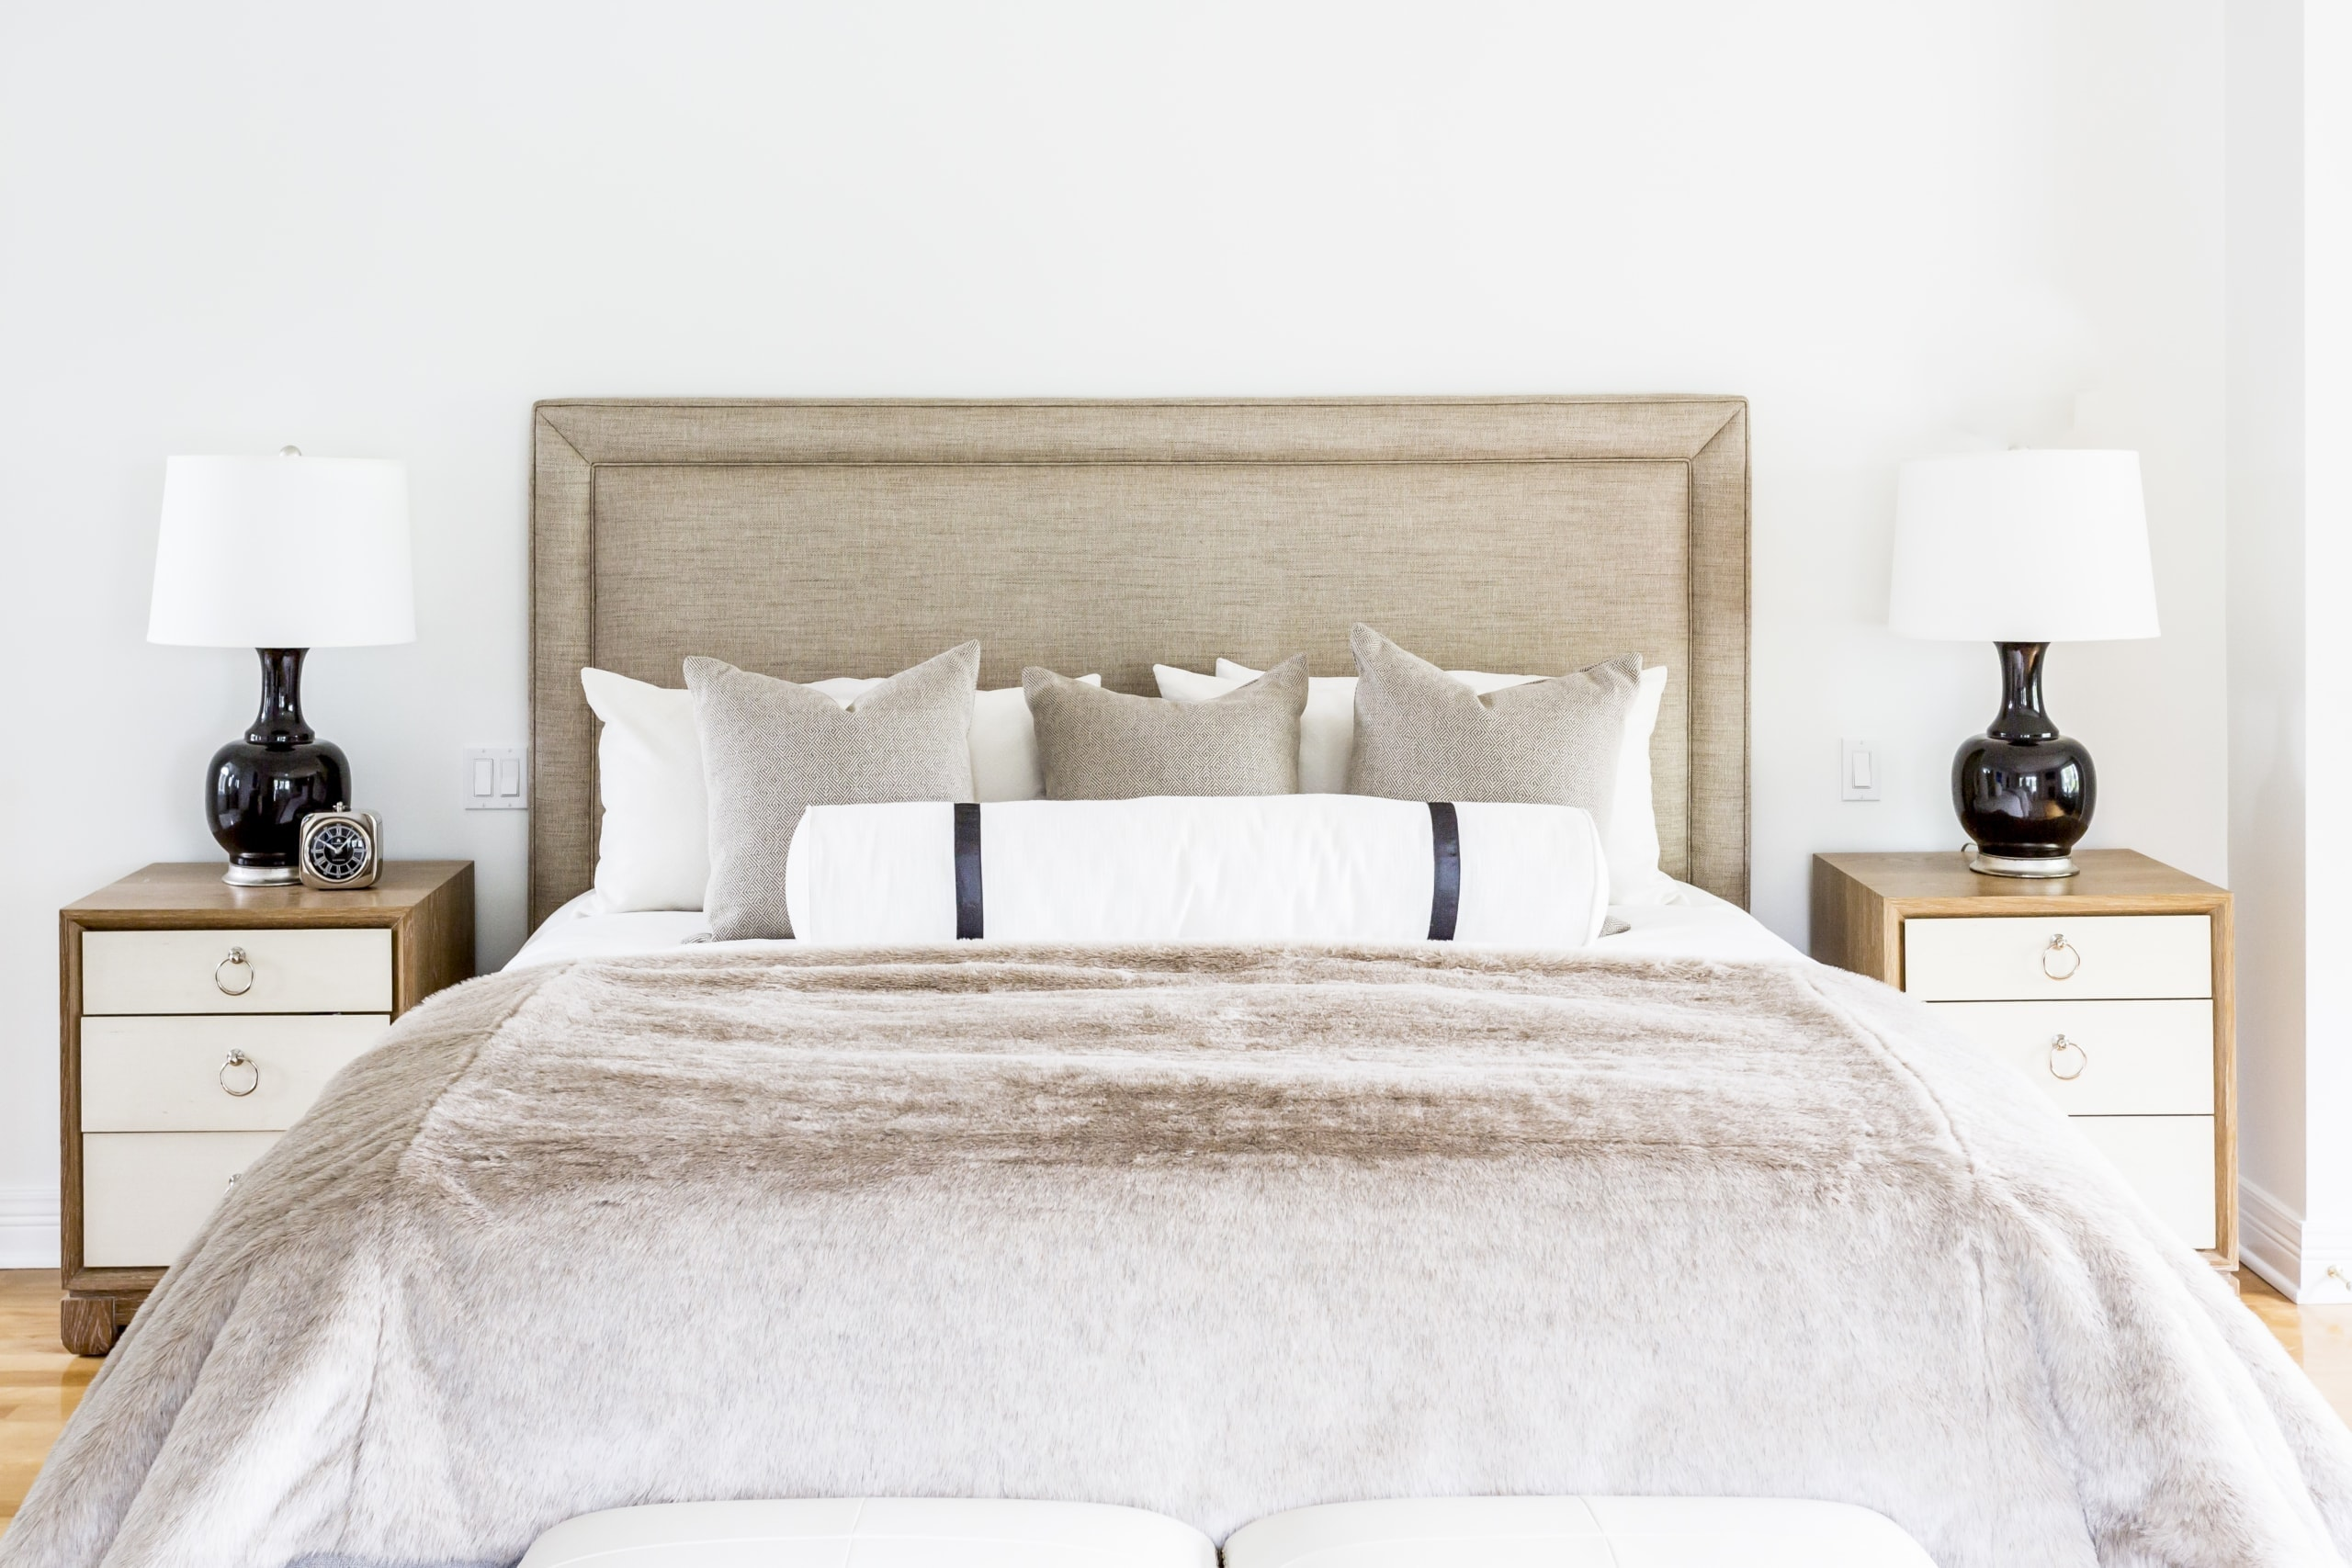 Large bed with the same bedside table and lamps on each side